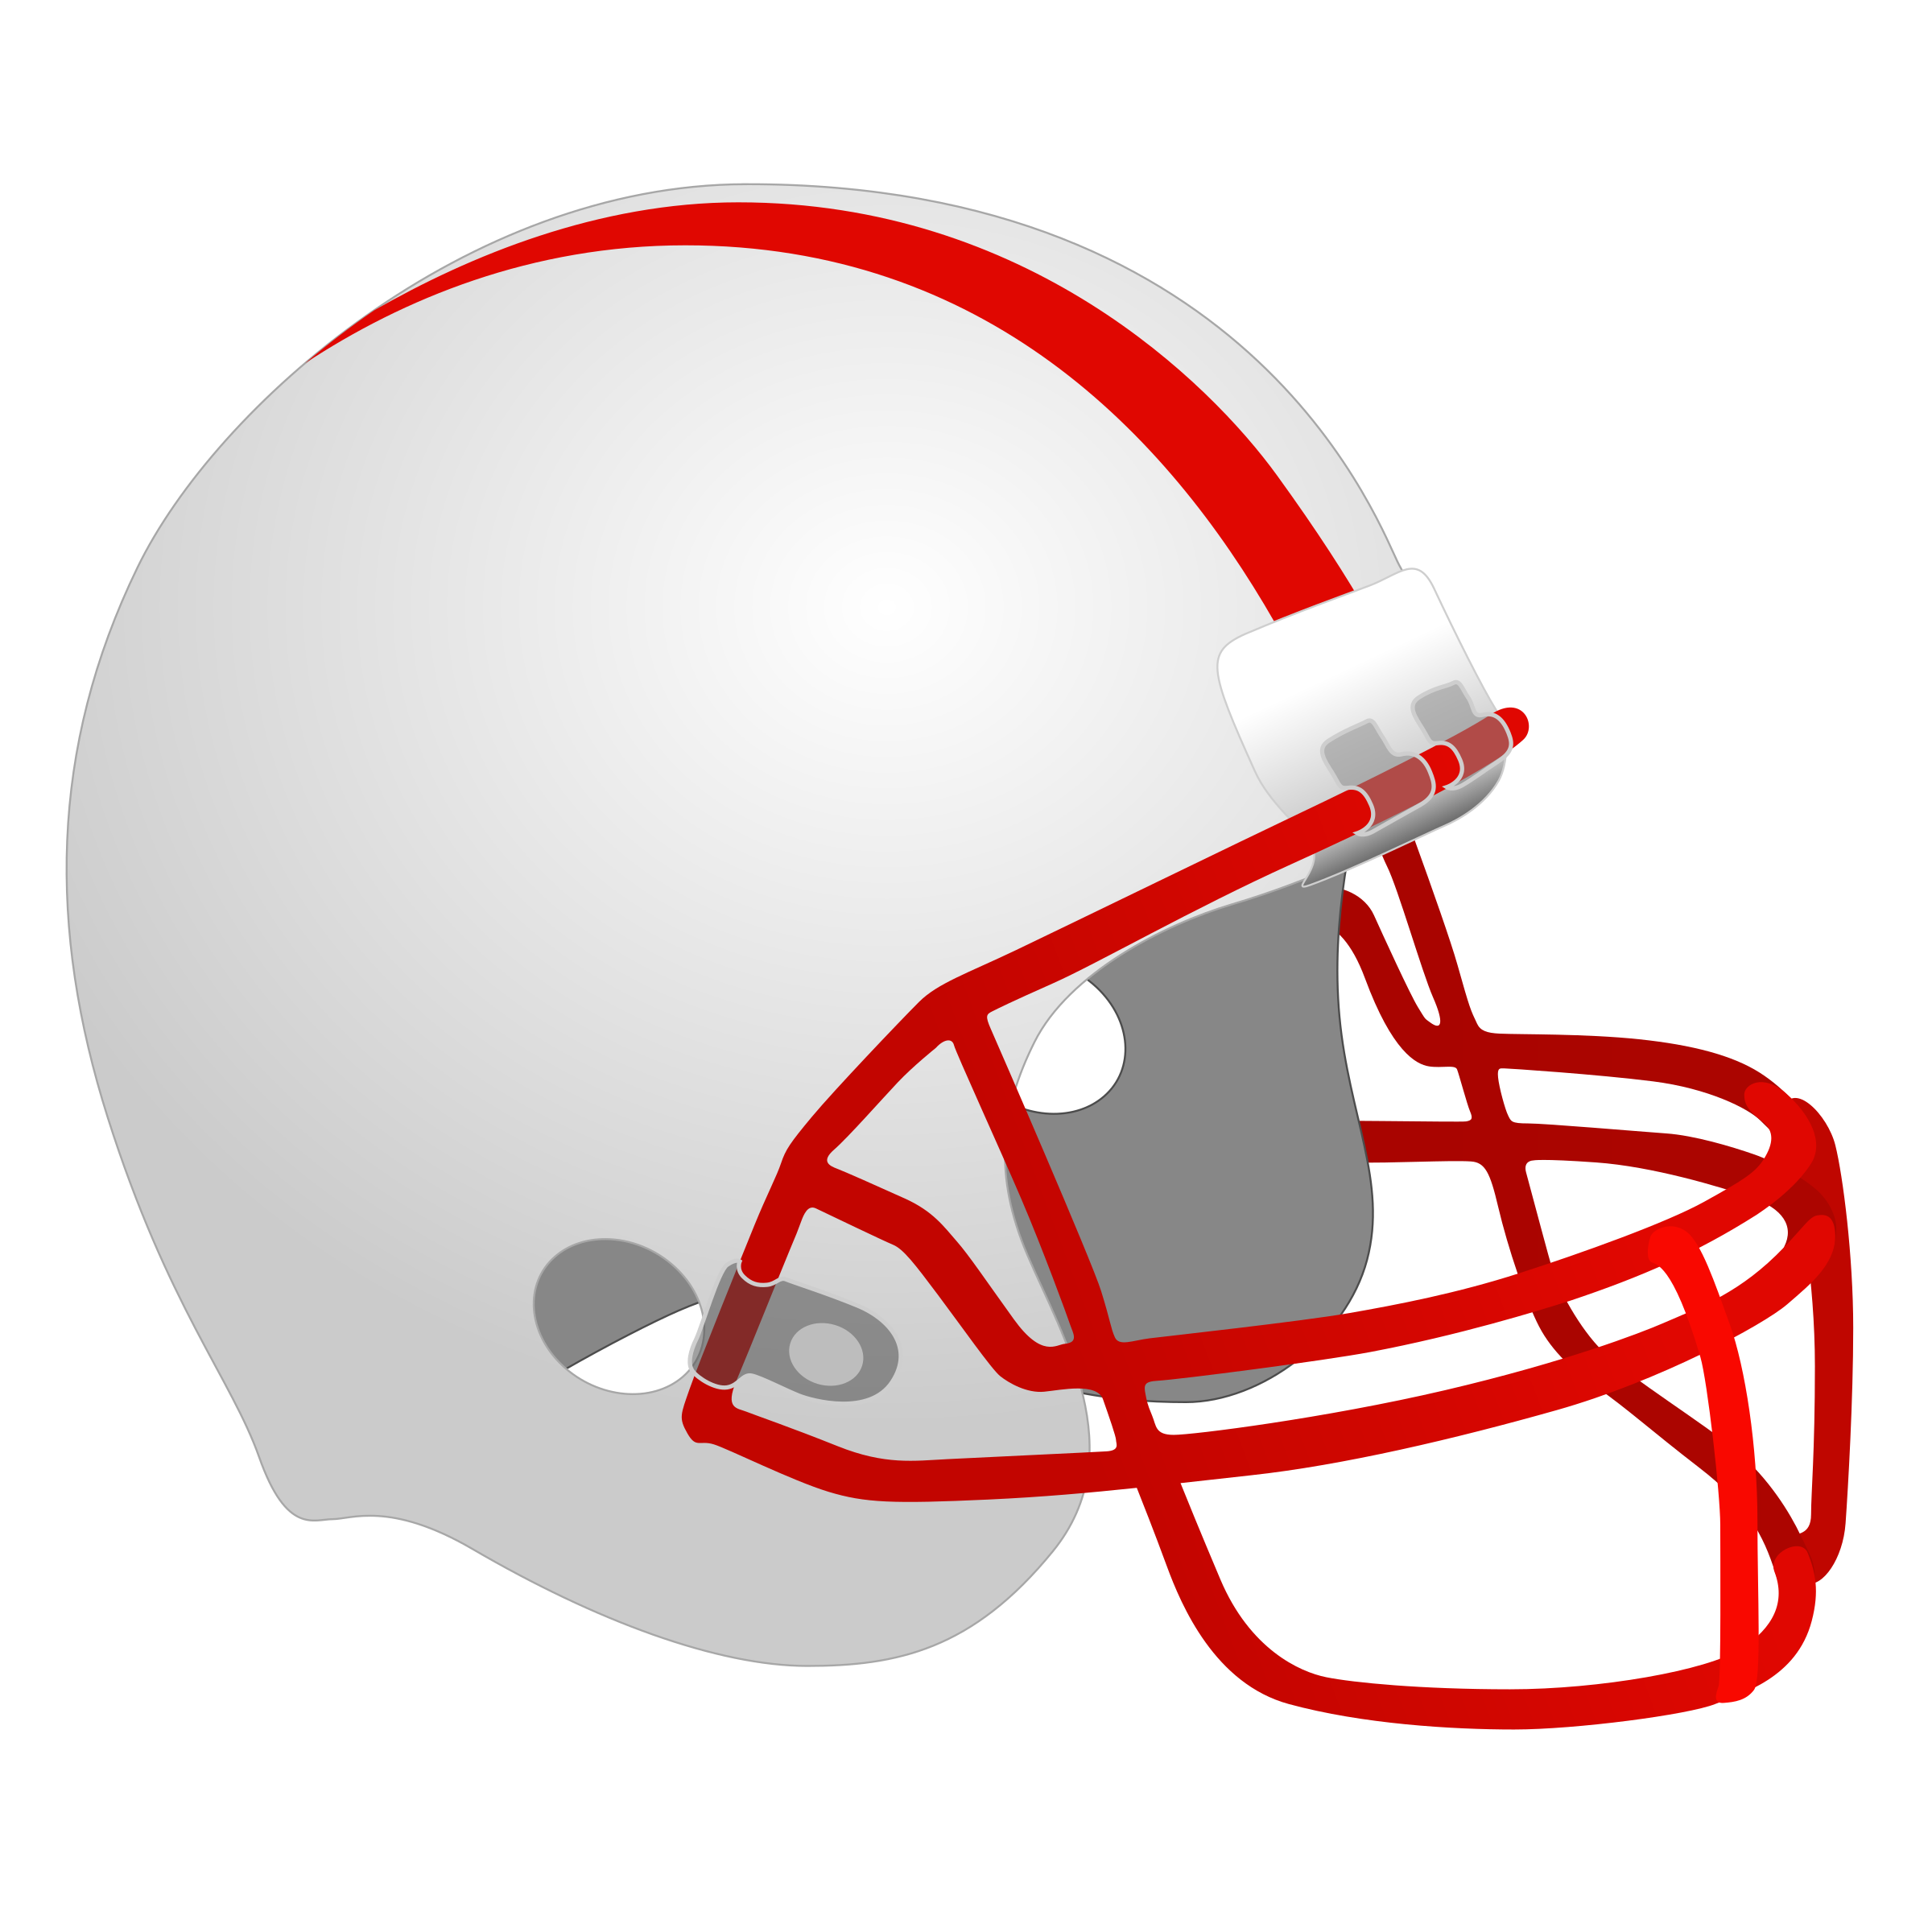 College football helmet clipart png free stock Football Helmet Icons PNG - Free PNG and Icons Downloads png free stock